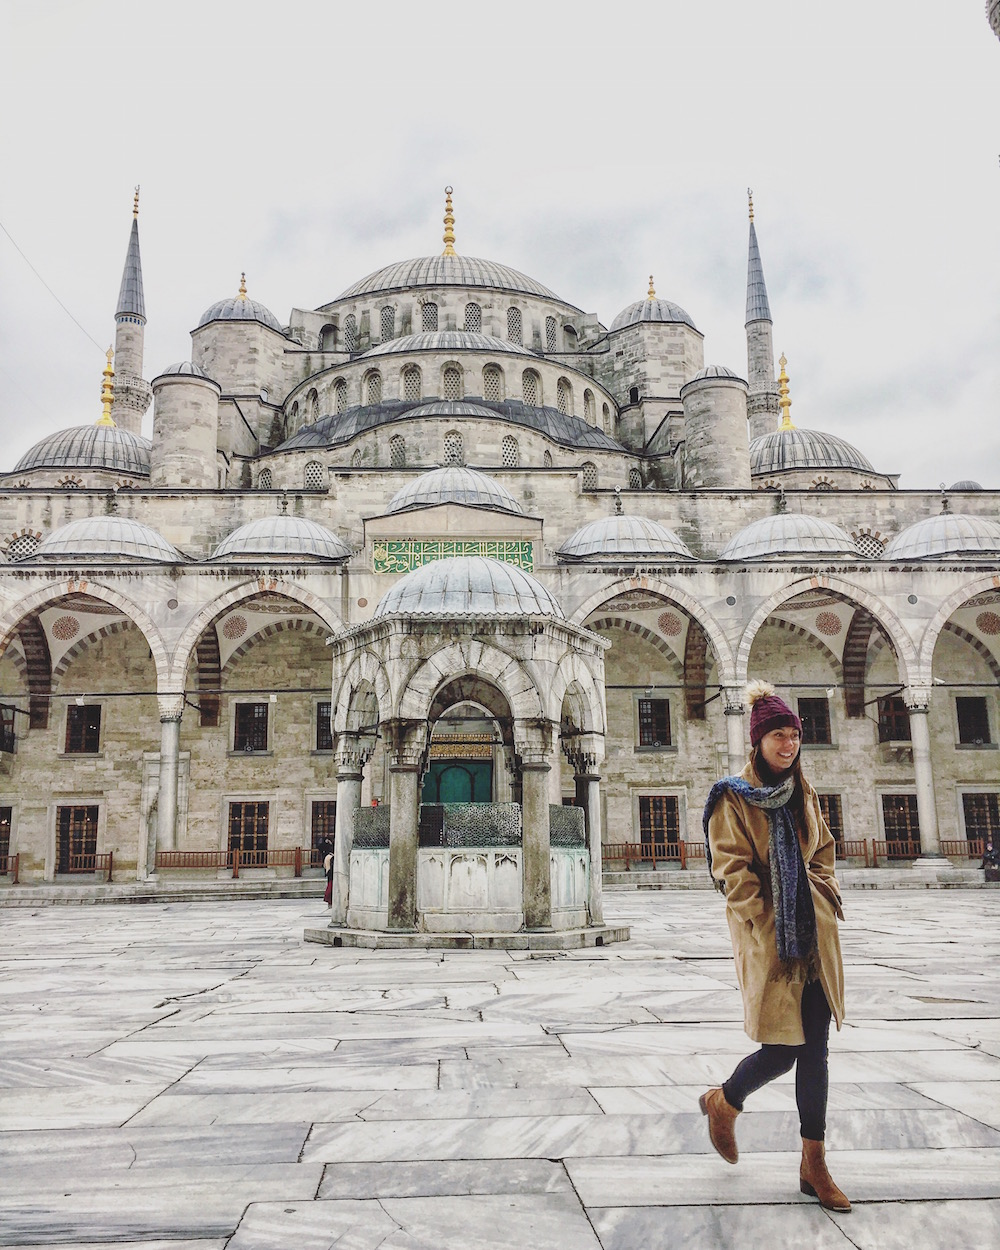 Most Popular Vacation Spots In The World: The Most Instagramable Spots In Istanbul